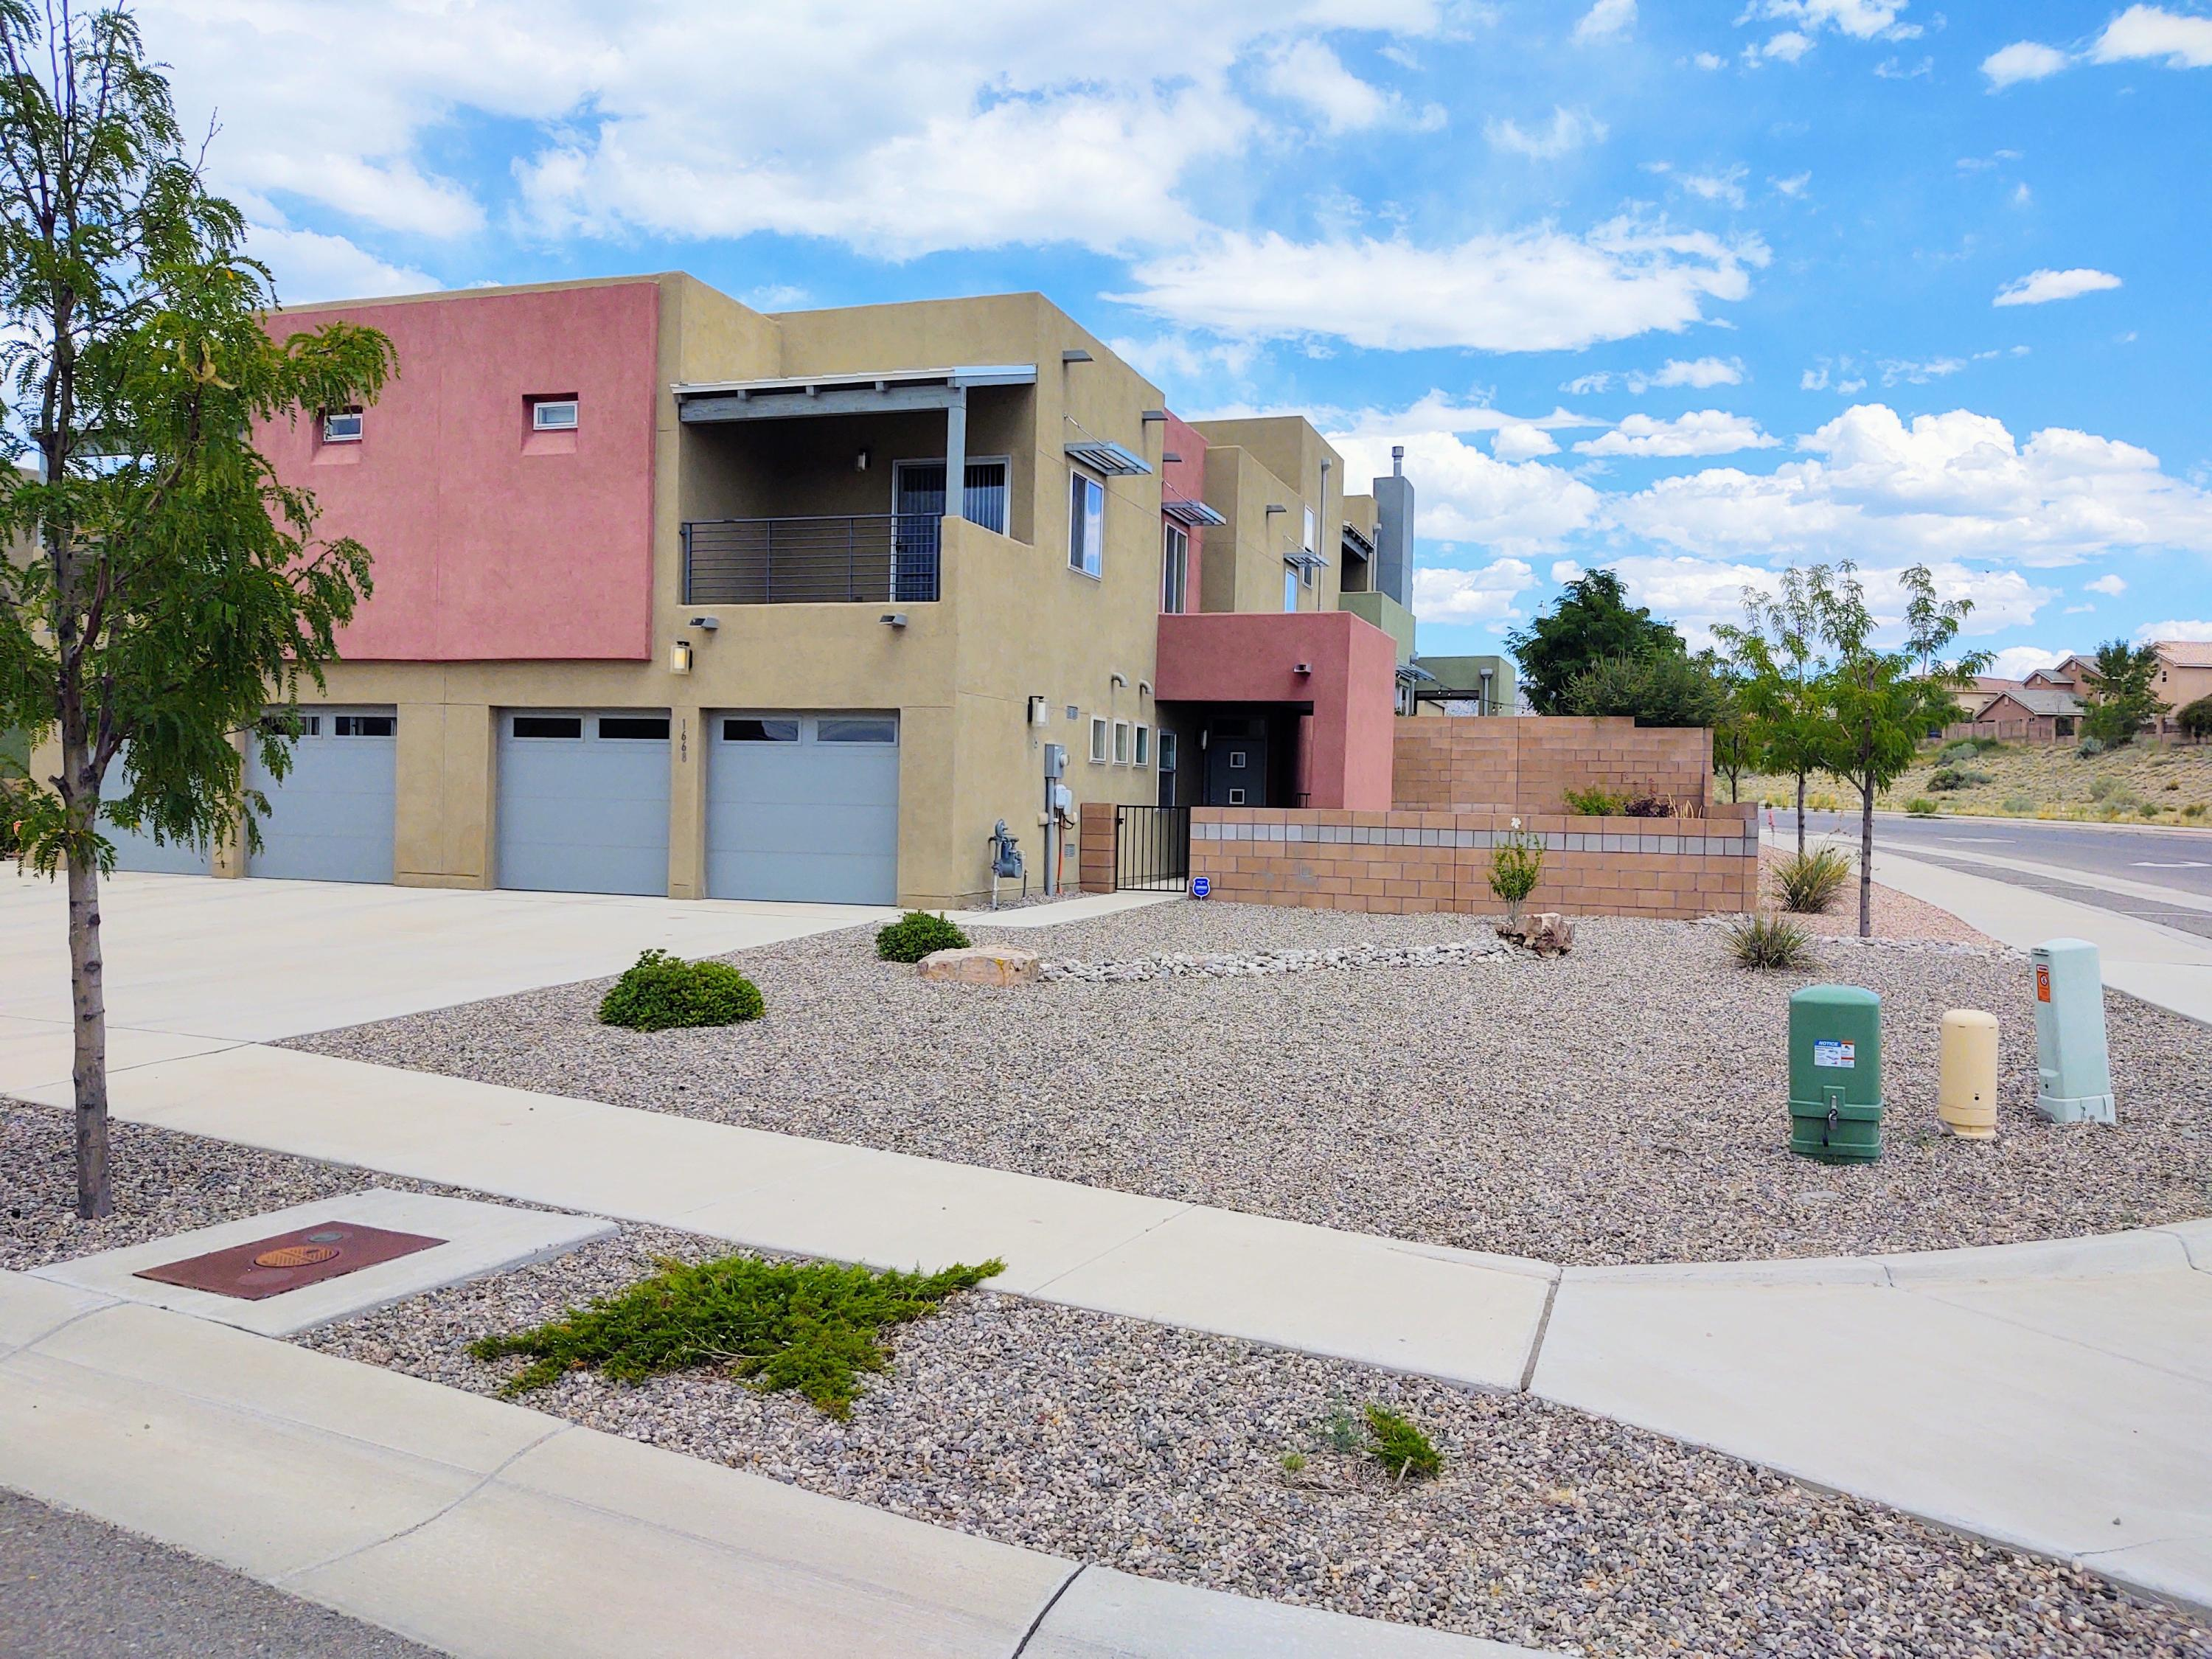 Wow! Look at this wonderful contemporary LGI town home on a over sized corner lot in the amazing Volterra Village subdivision. This great home has a wonderful light, bright and open floor plan, tile flooring throughout the 1st floor, granite counter tops, beautiful cabinets, tile back splash, stainless steel appliances, upgraded lighting, custom paint, huge farm sink and so much more. Enjoy this well put together master bedroom and bathroom with plank flooring, balcony, countertops, double sinks and large linen closet. Yard was professionally landscaped and has a fire pit plus sitting area. This is a must see to believe home and priced to sell.